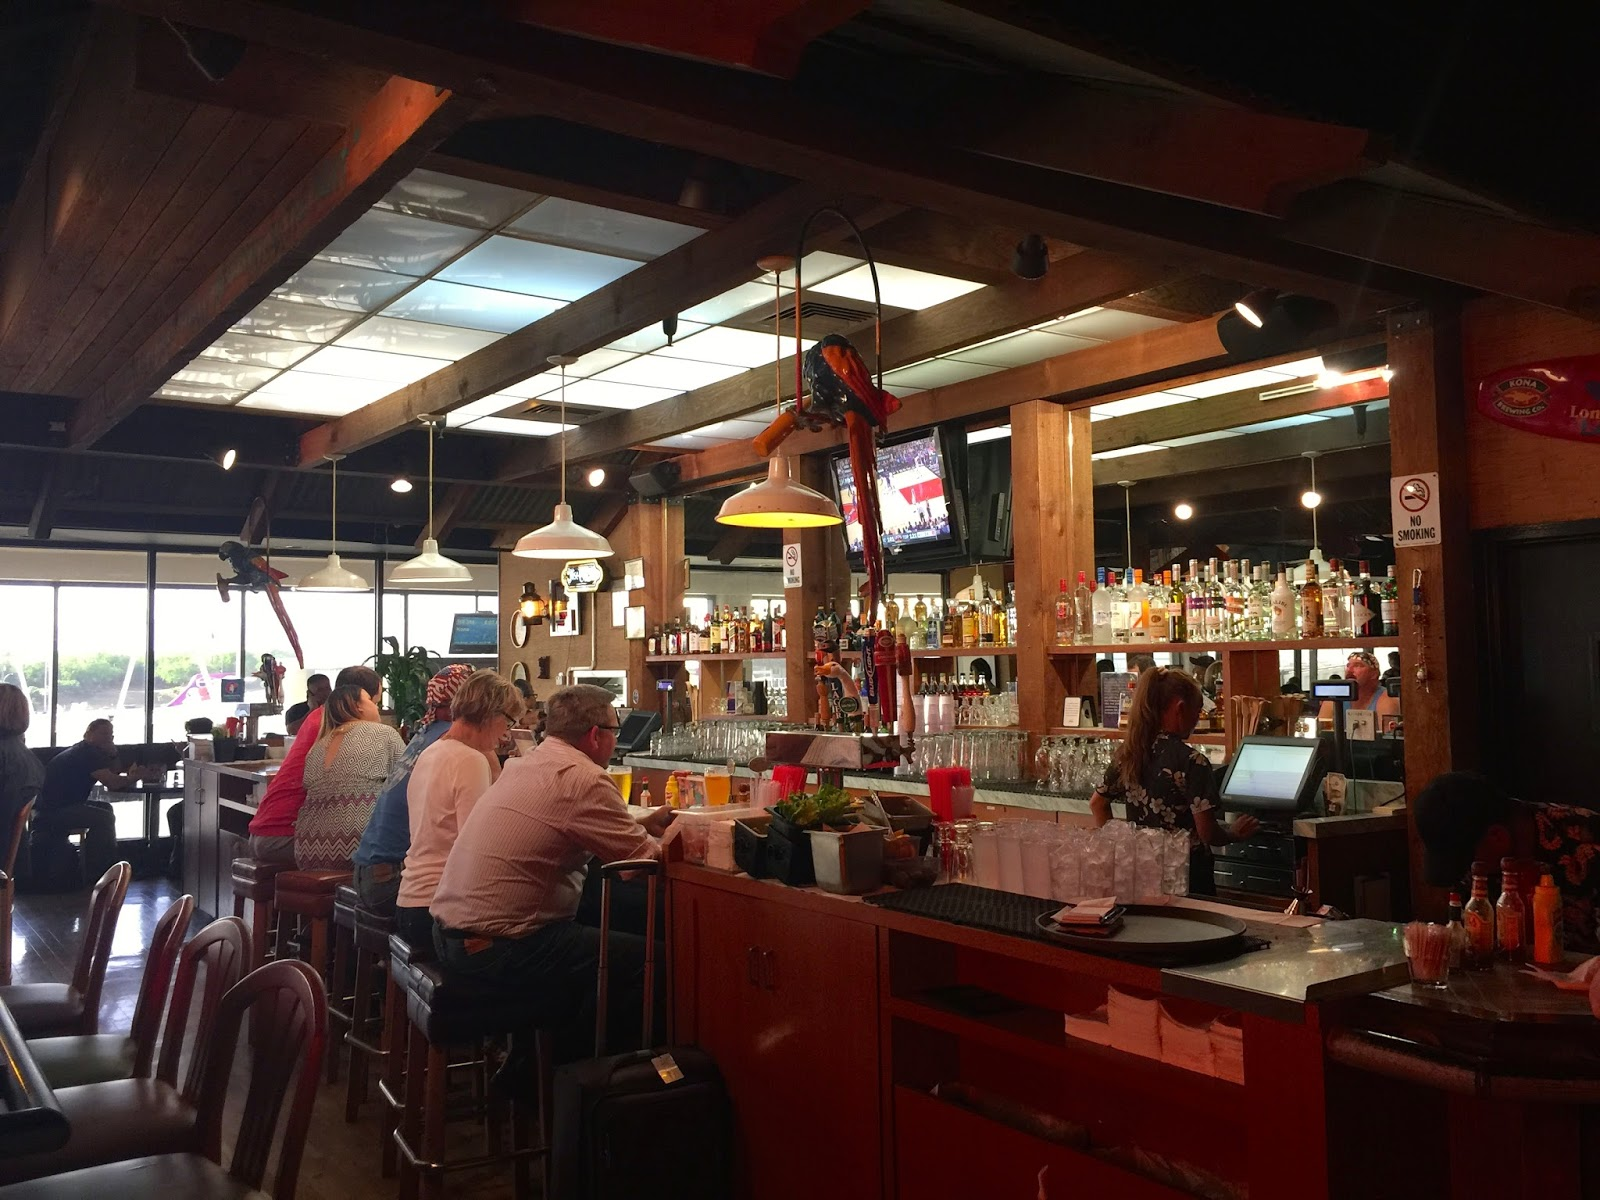 Taste of hawaii stinger ray 39 s tropical bar and grill - Restaurant bar and grill ...